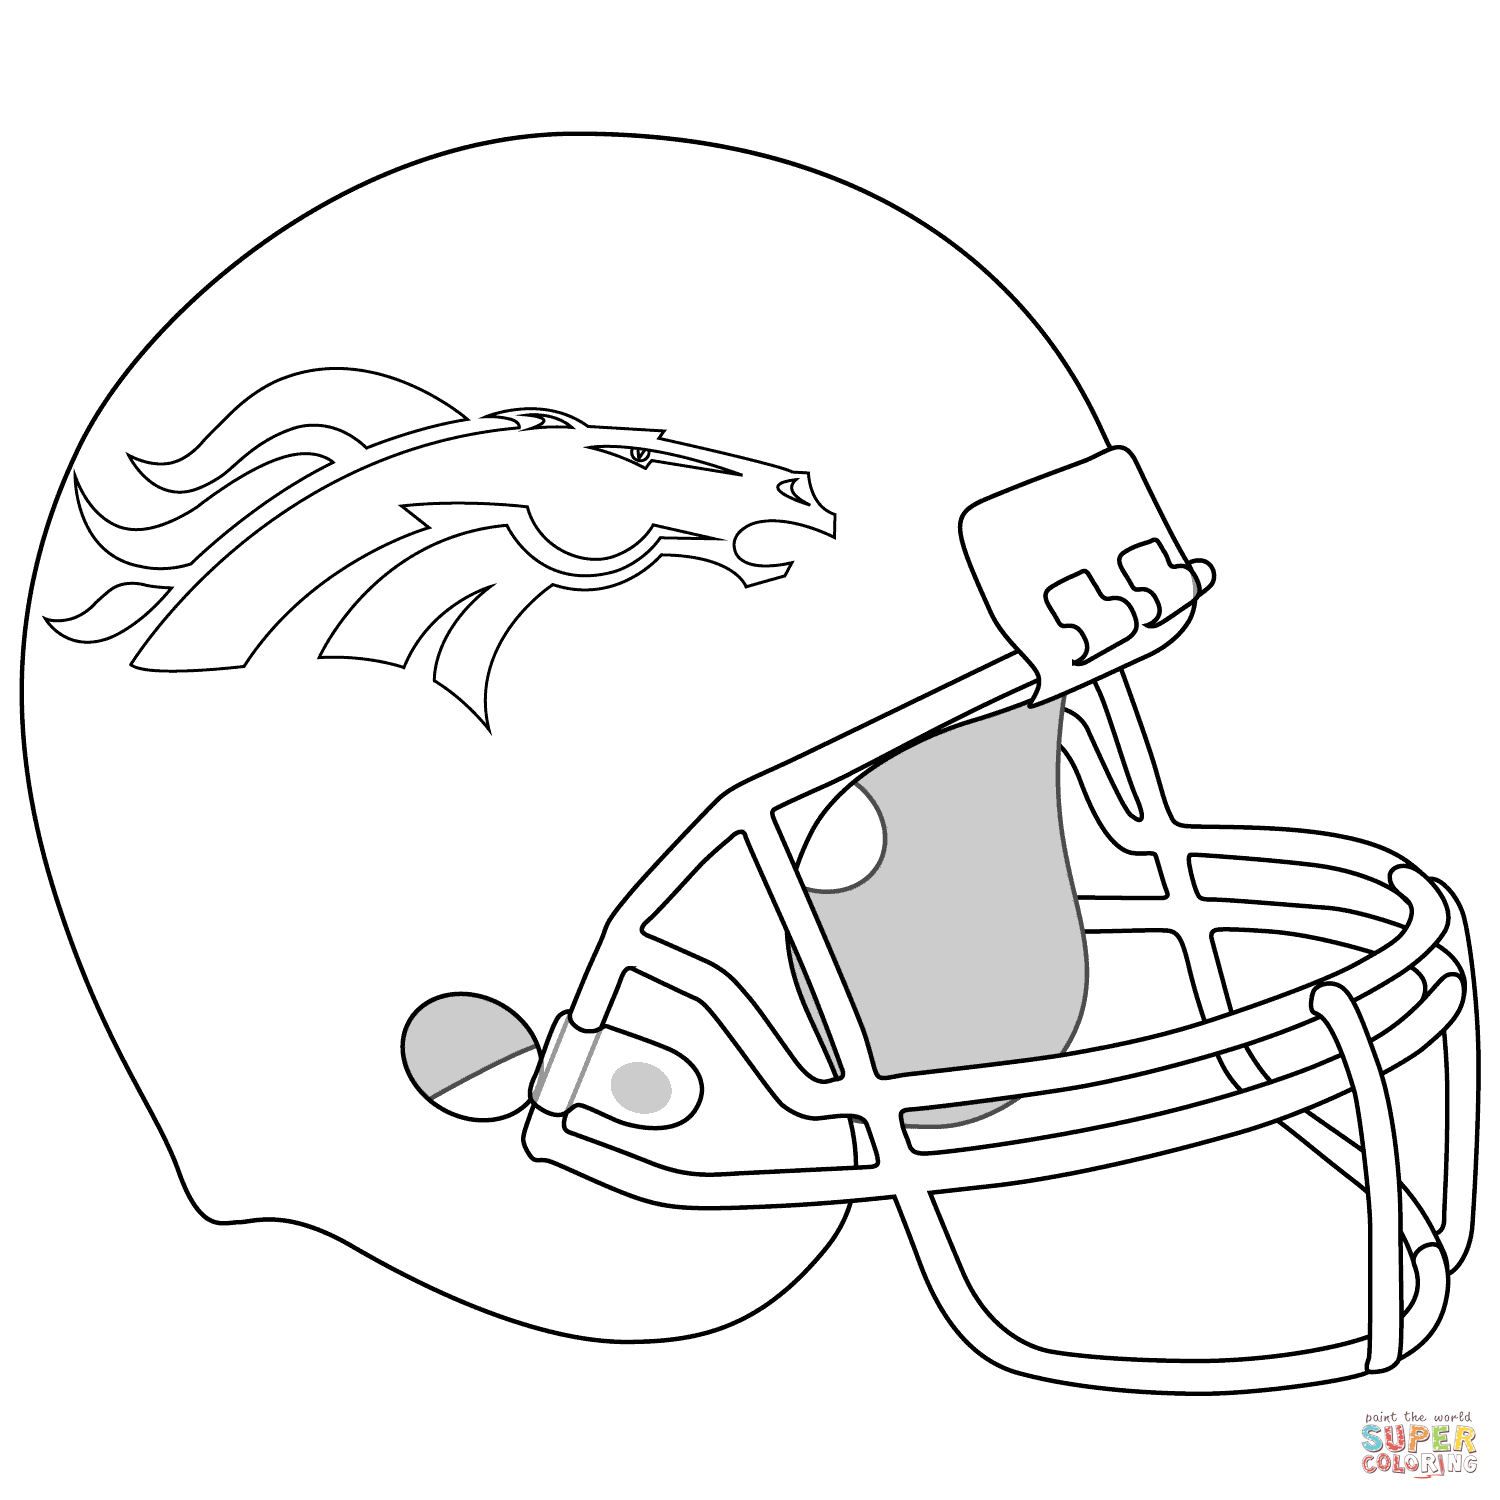 1500x1500 Denver Broncos Helmet Coloring Page Free Printable Coloring Pages